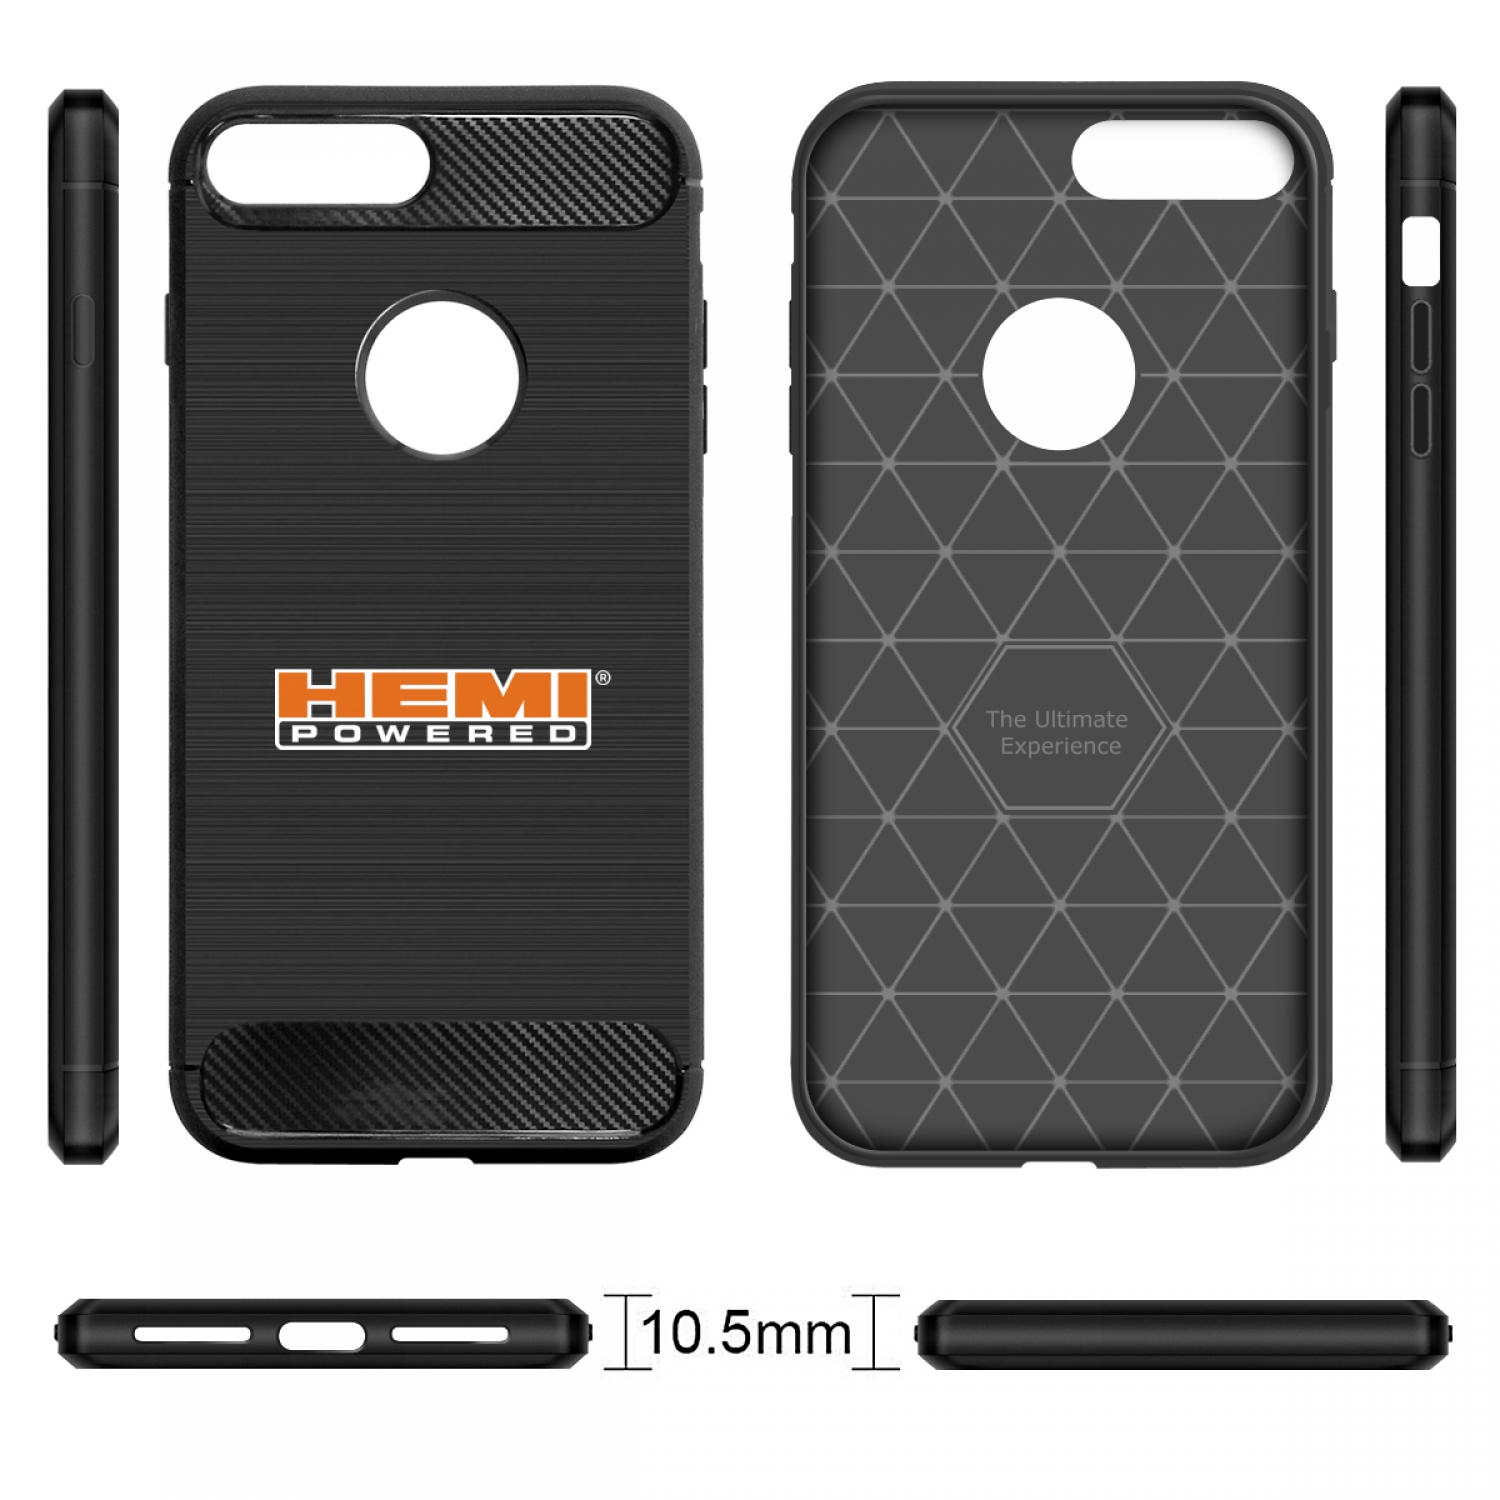 iPhone 7 Plus Case, HEMI Powered Black TPU Shockproof Carbon Fiber Textures Cell Phone Case